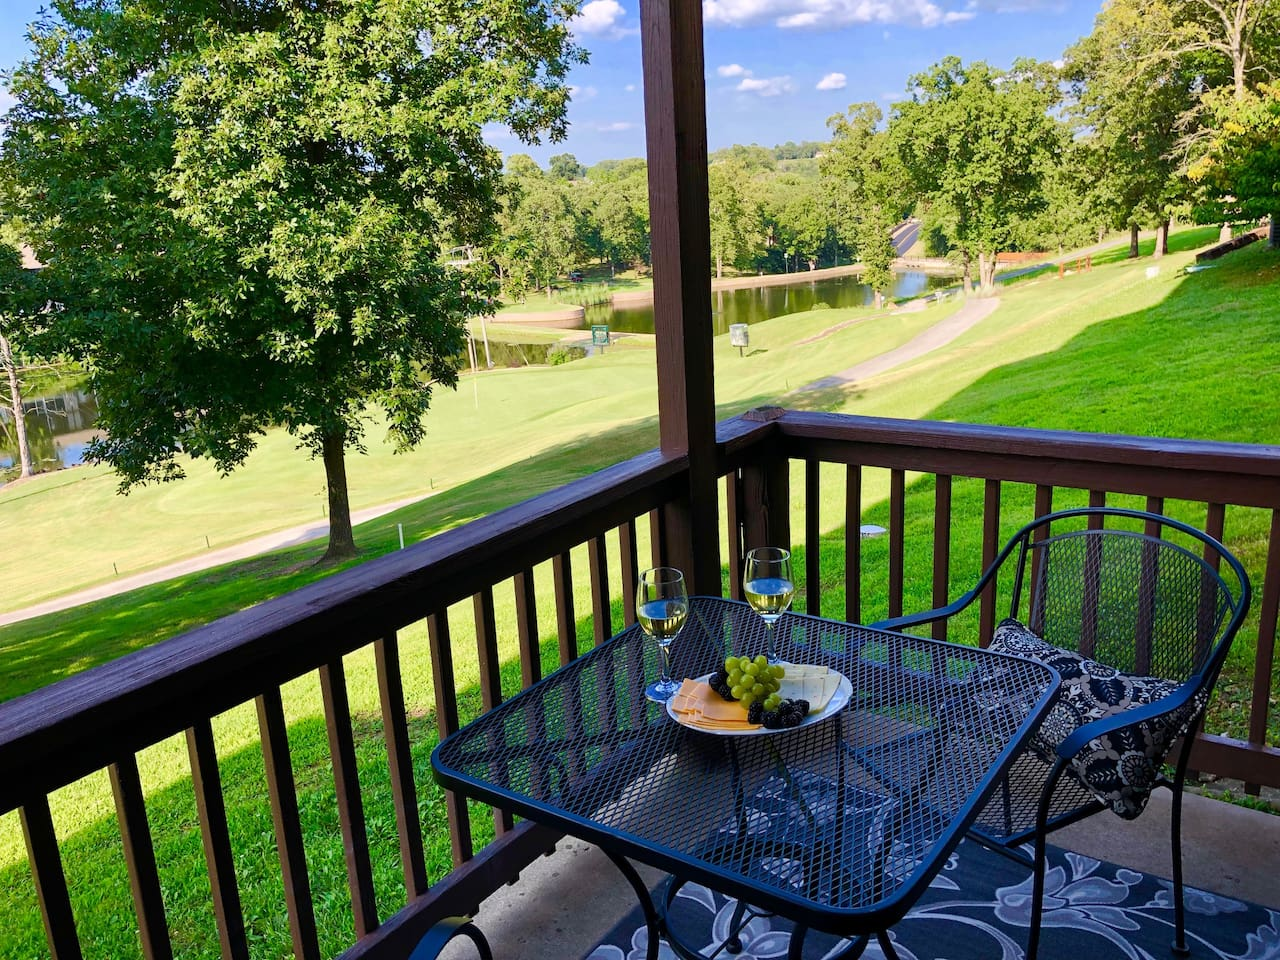 ENJOY YOUR MEALS ON THE PORCH OVERLOOKING THE BEAUTIFUL GOLF COURSE LAKE